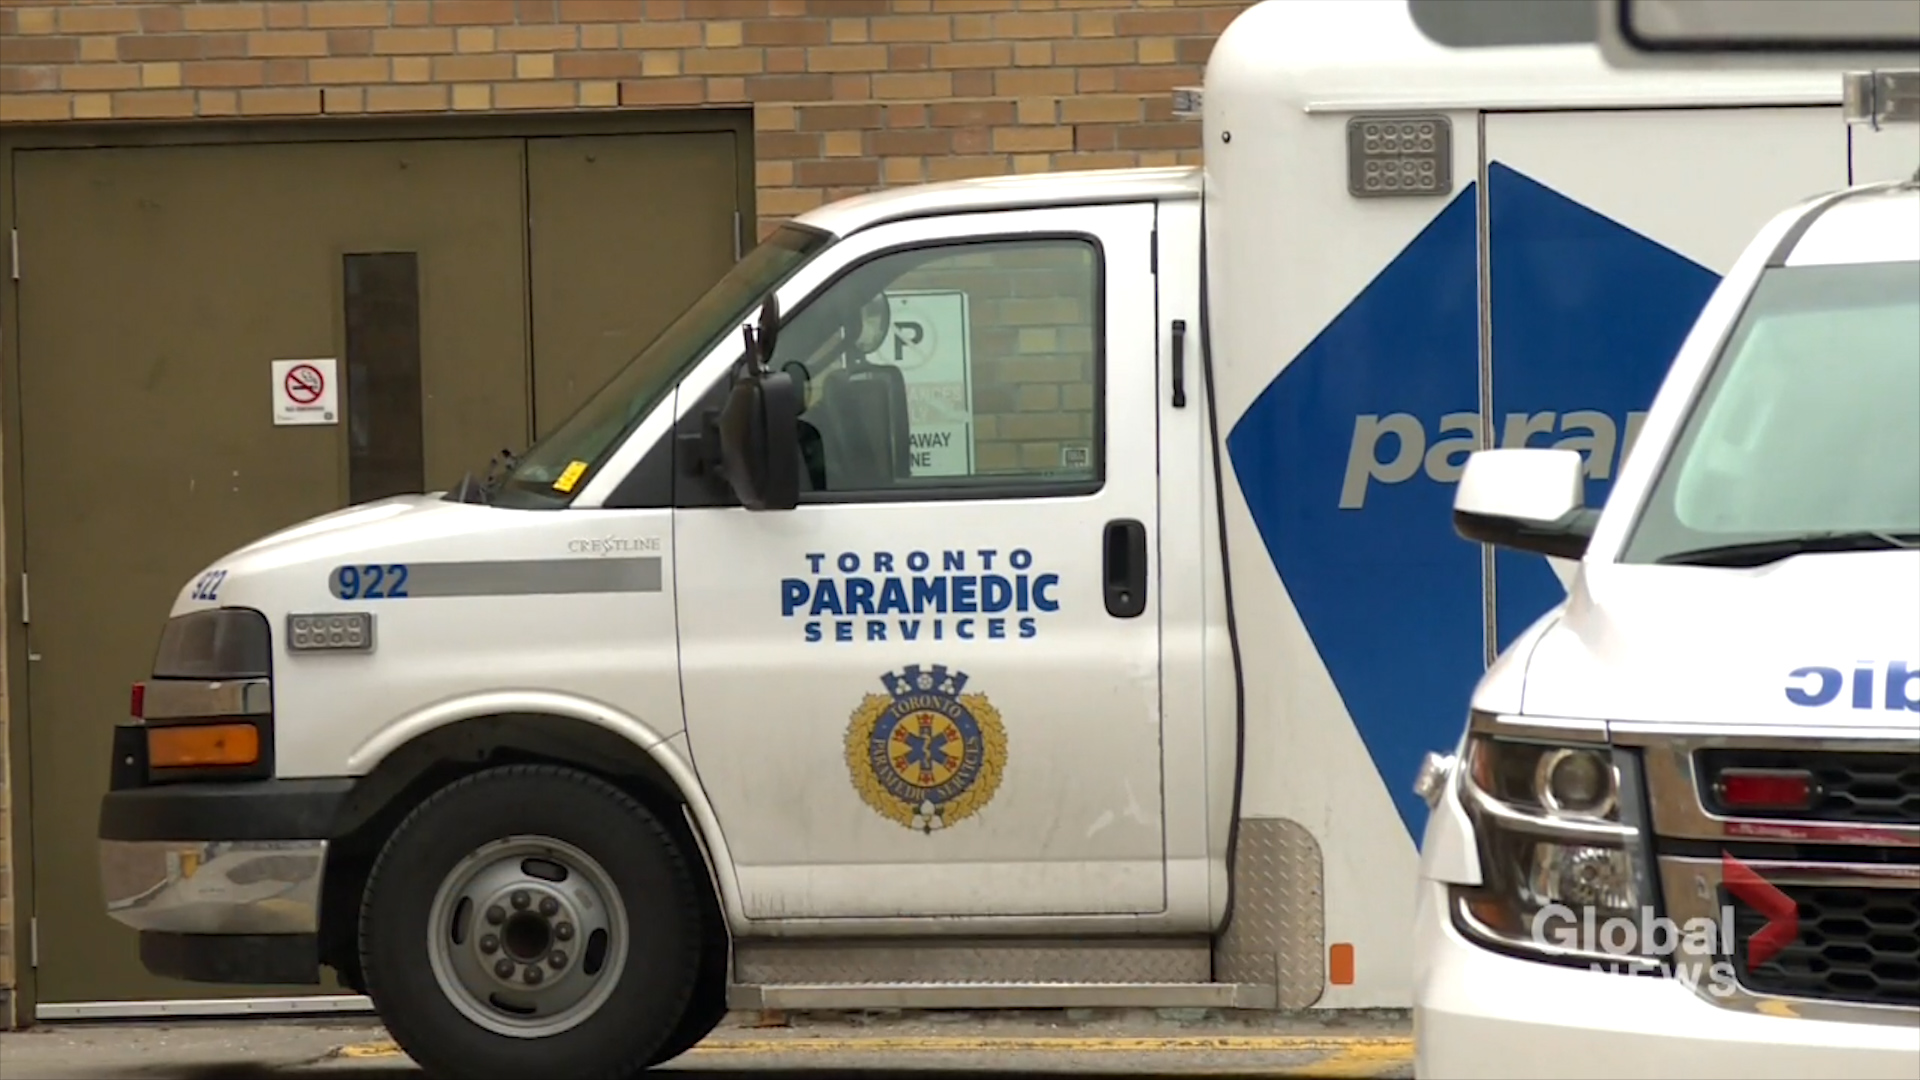 Details emerge about Toronto patient believed to have coronavirus